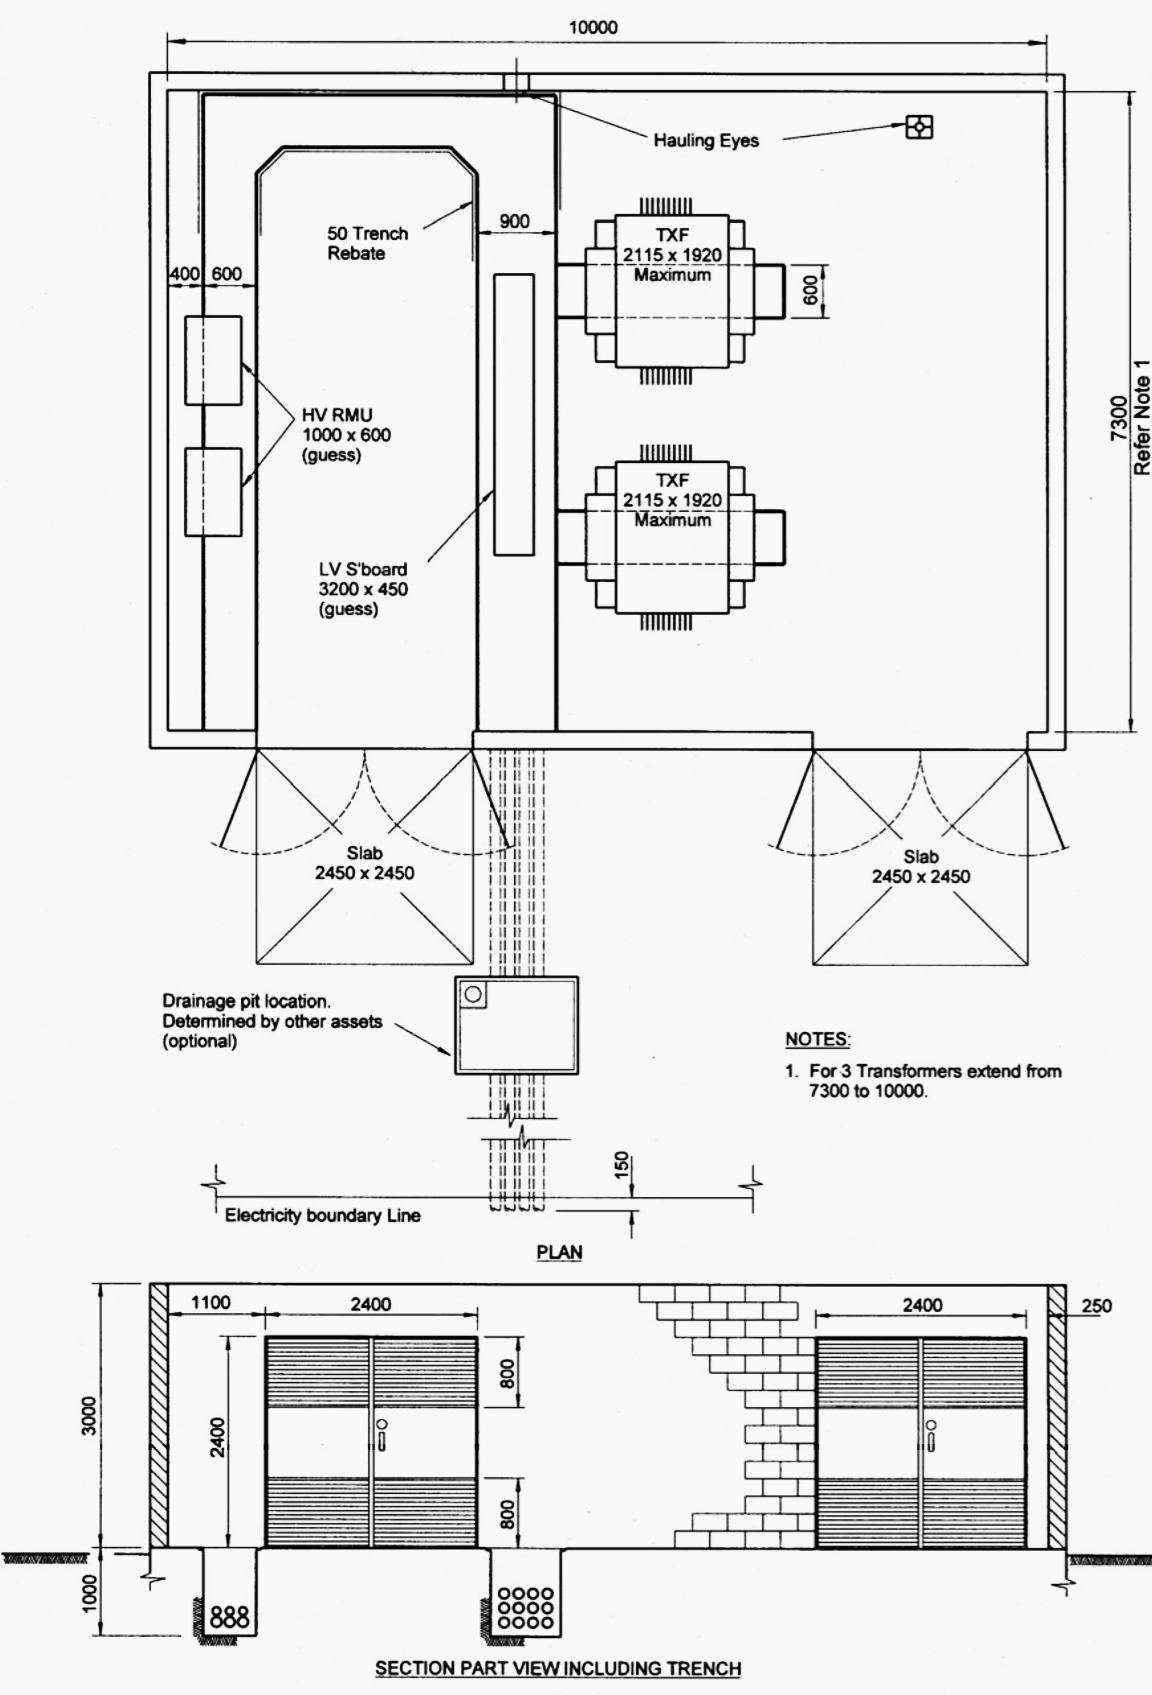 wiring diagram substation 1950 ford dash indoor distribution layout with 2 transformers